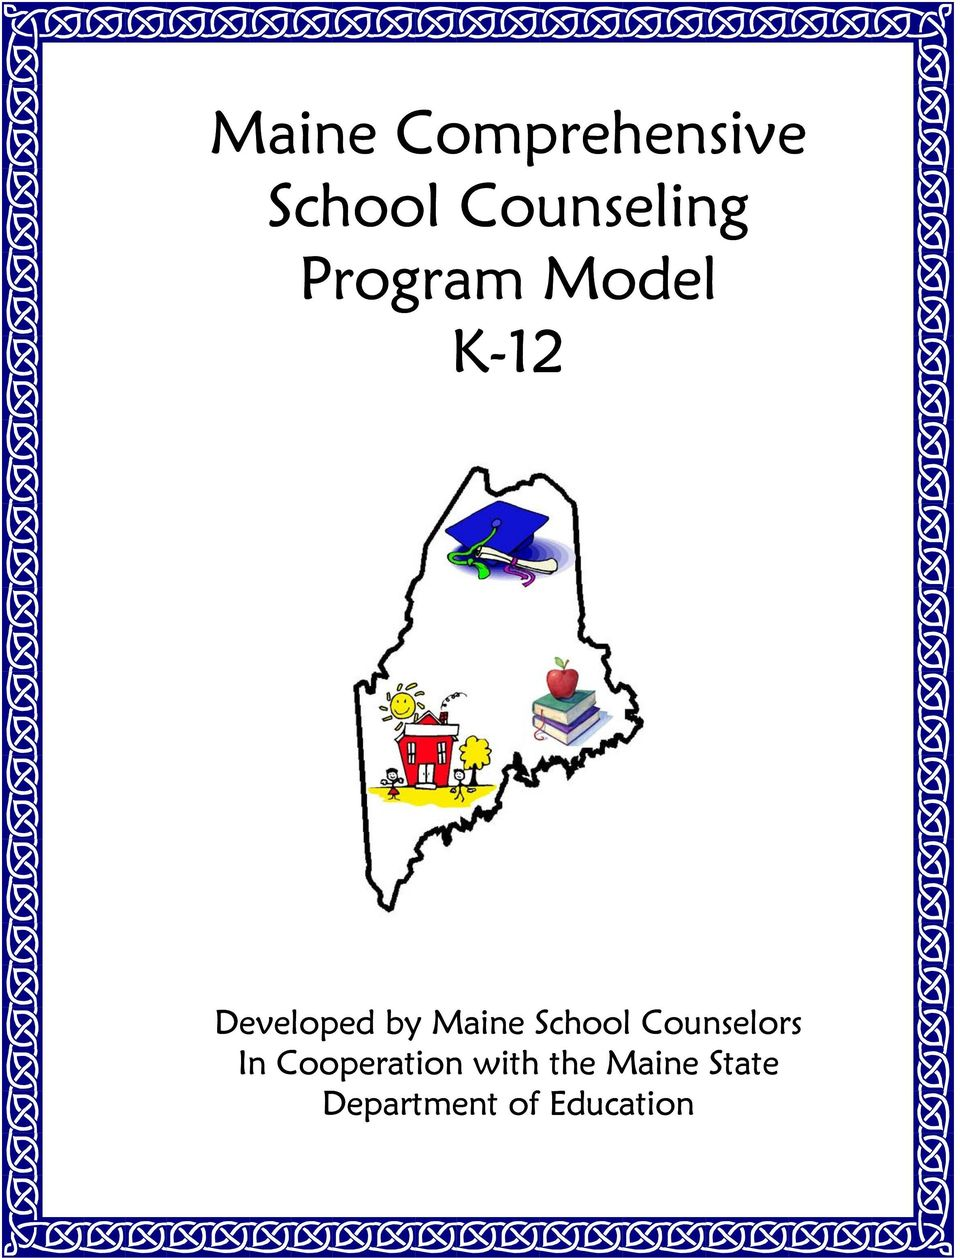 School Counselors In Cooperation with